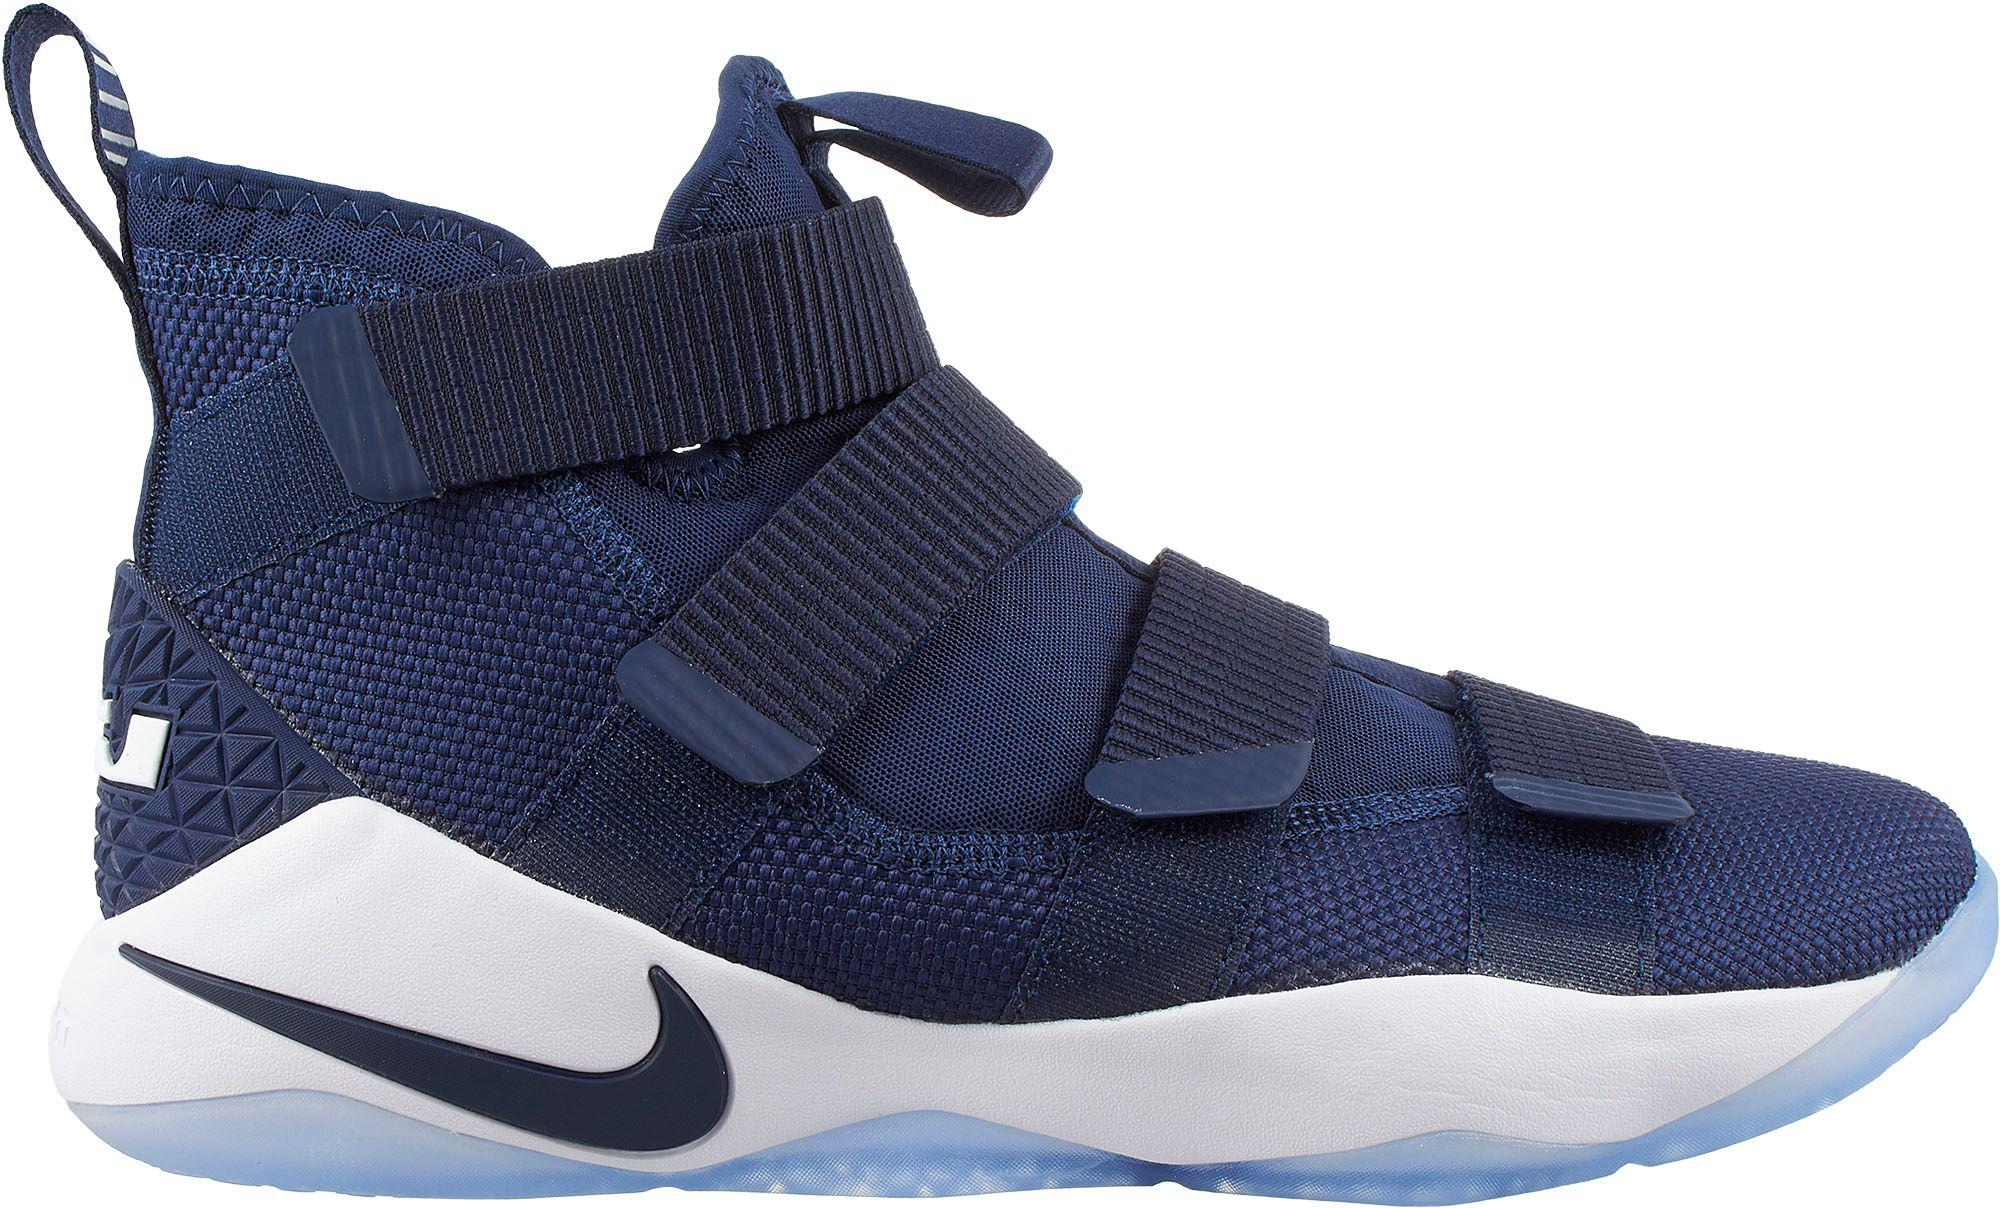 ccdf07ecf92a8 Lyst - Nike Zoom Lebron Soldier Xi Basketball Shoes in Blue for Men